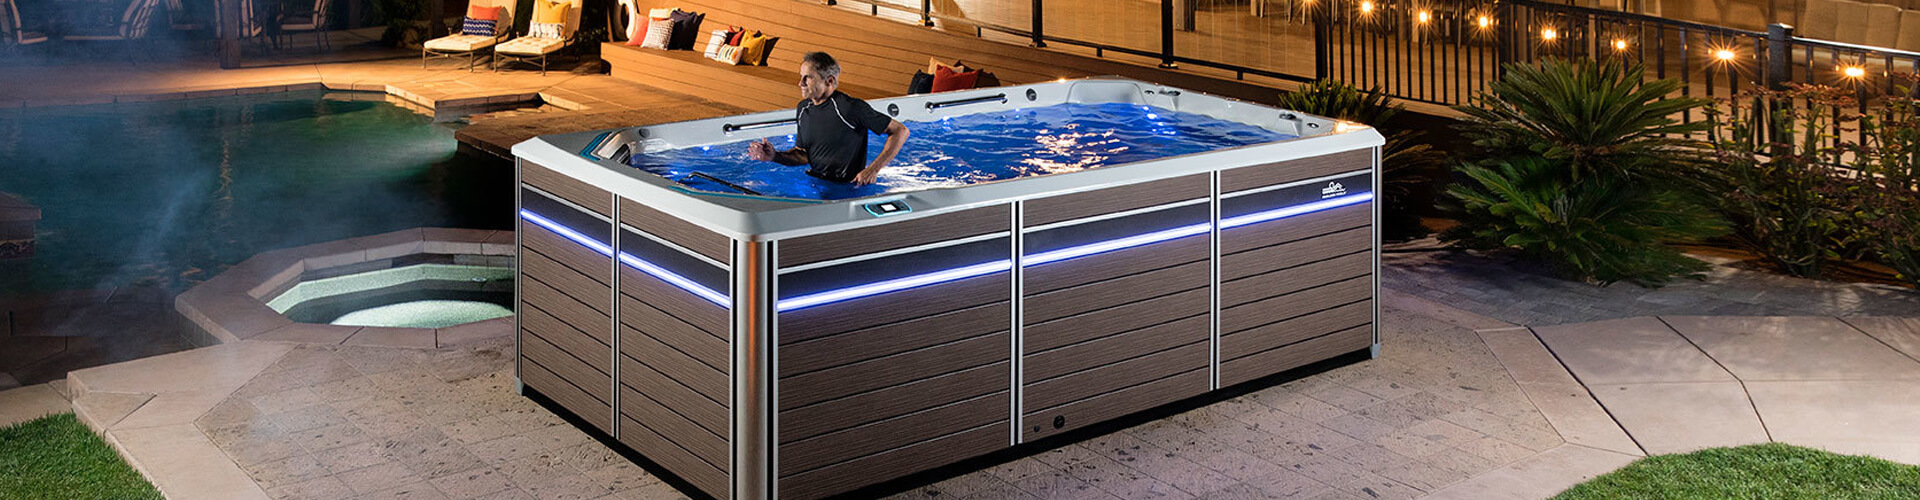 3 Reasons Why Lap Pools are So Popular with Families, Swim Spas Dealer Madison